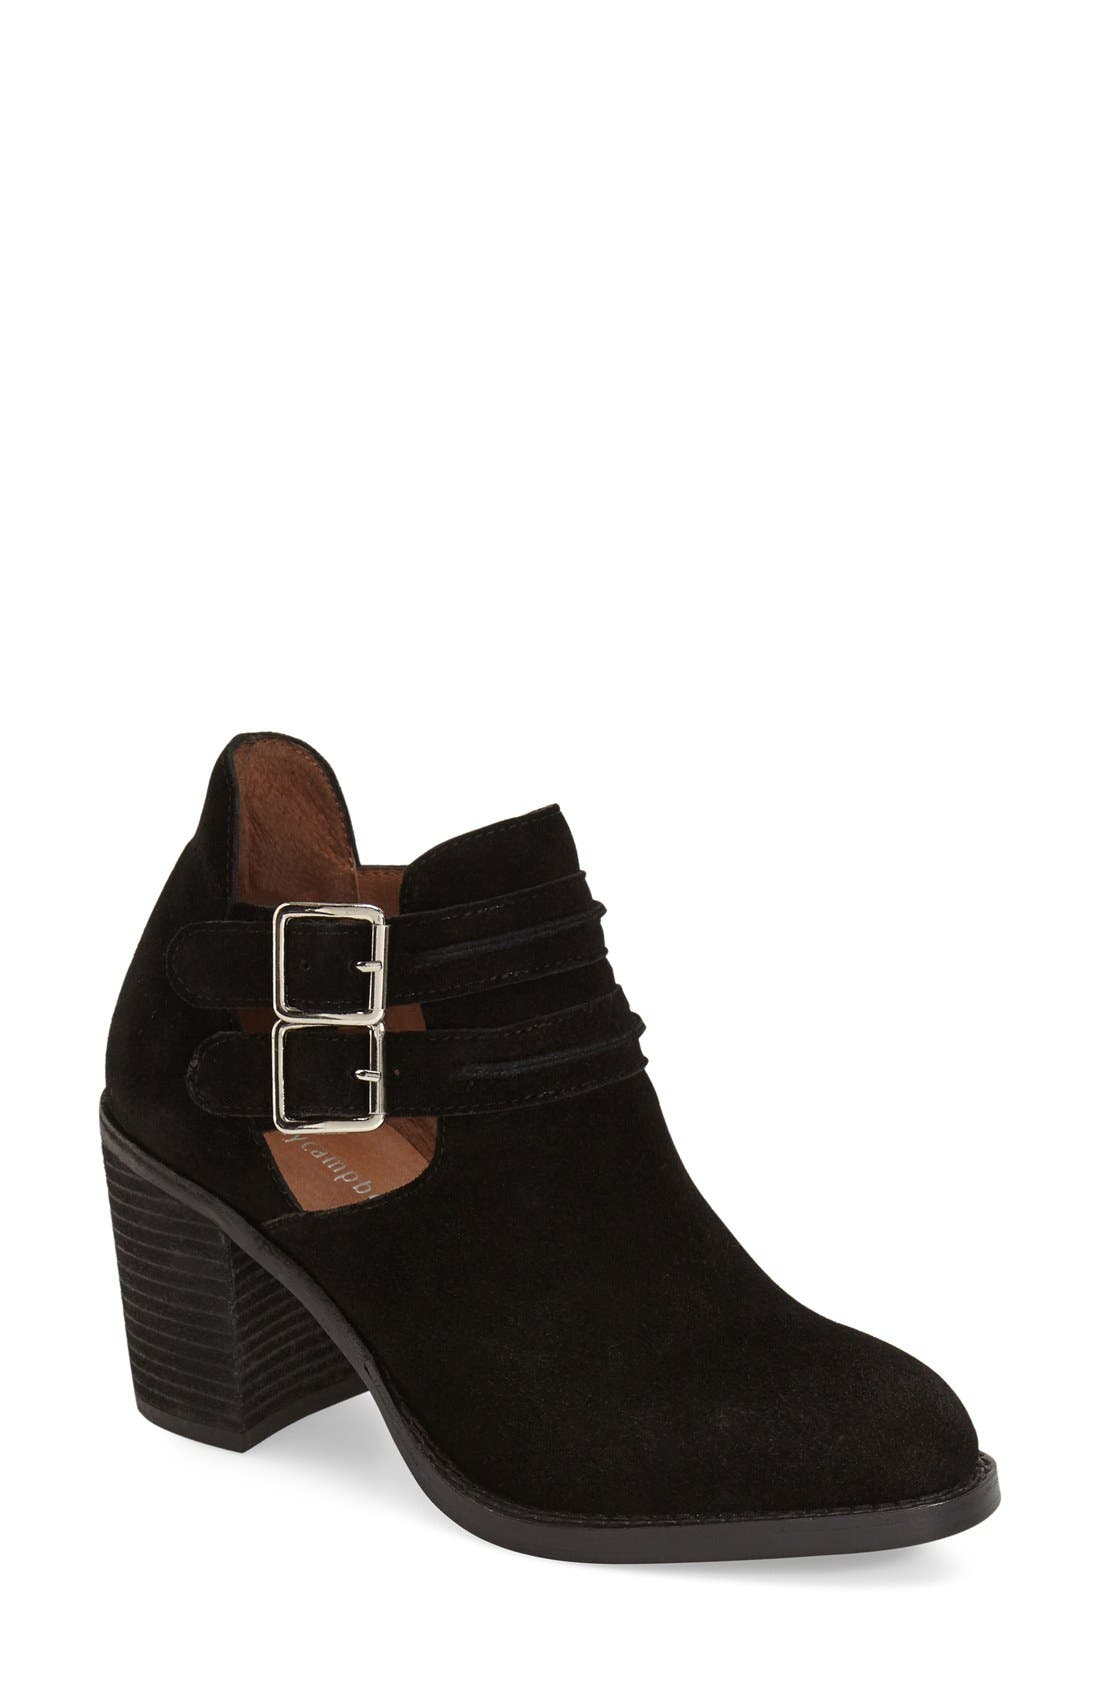 Alternate Image 1 Selected - Jeffrey Campbell 'Roycroft' Bootie (Women)